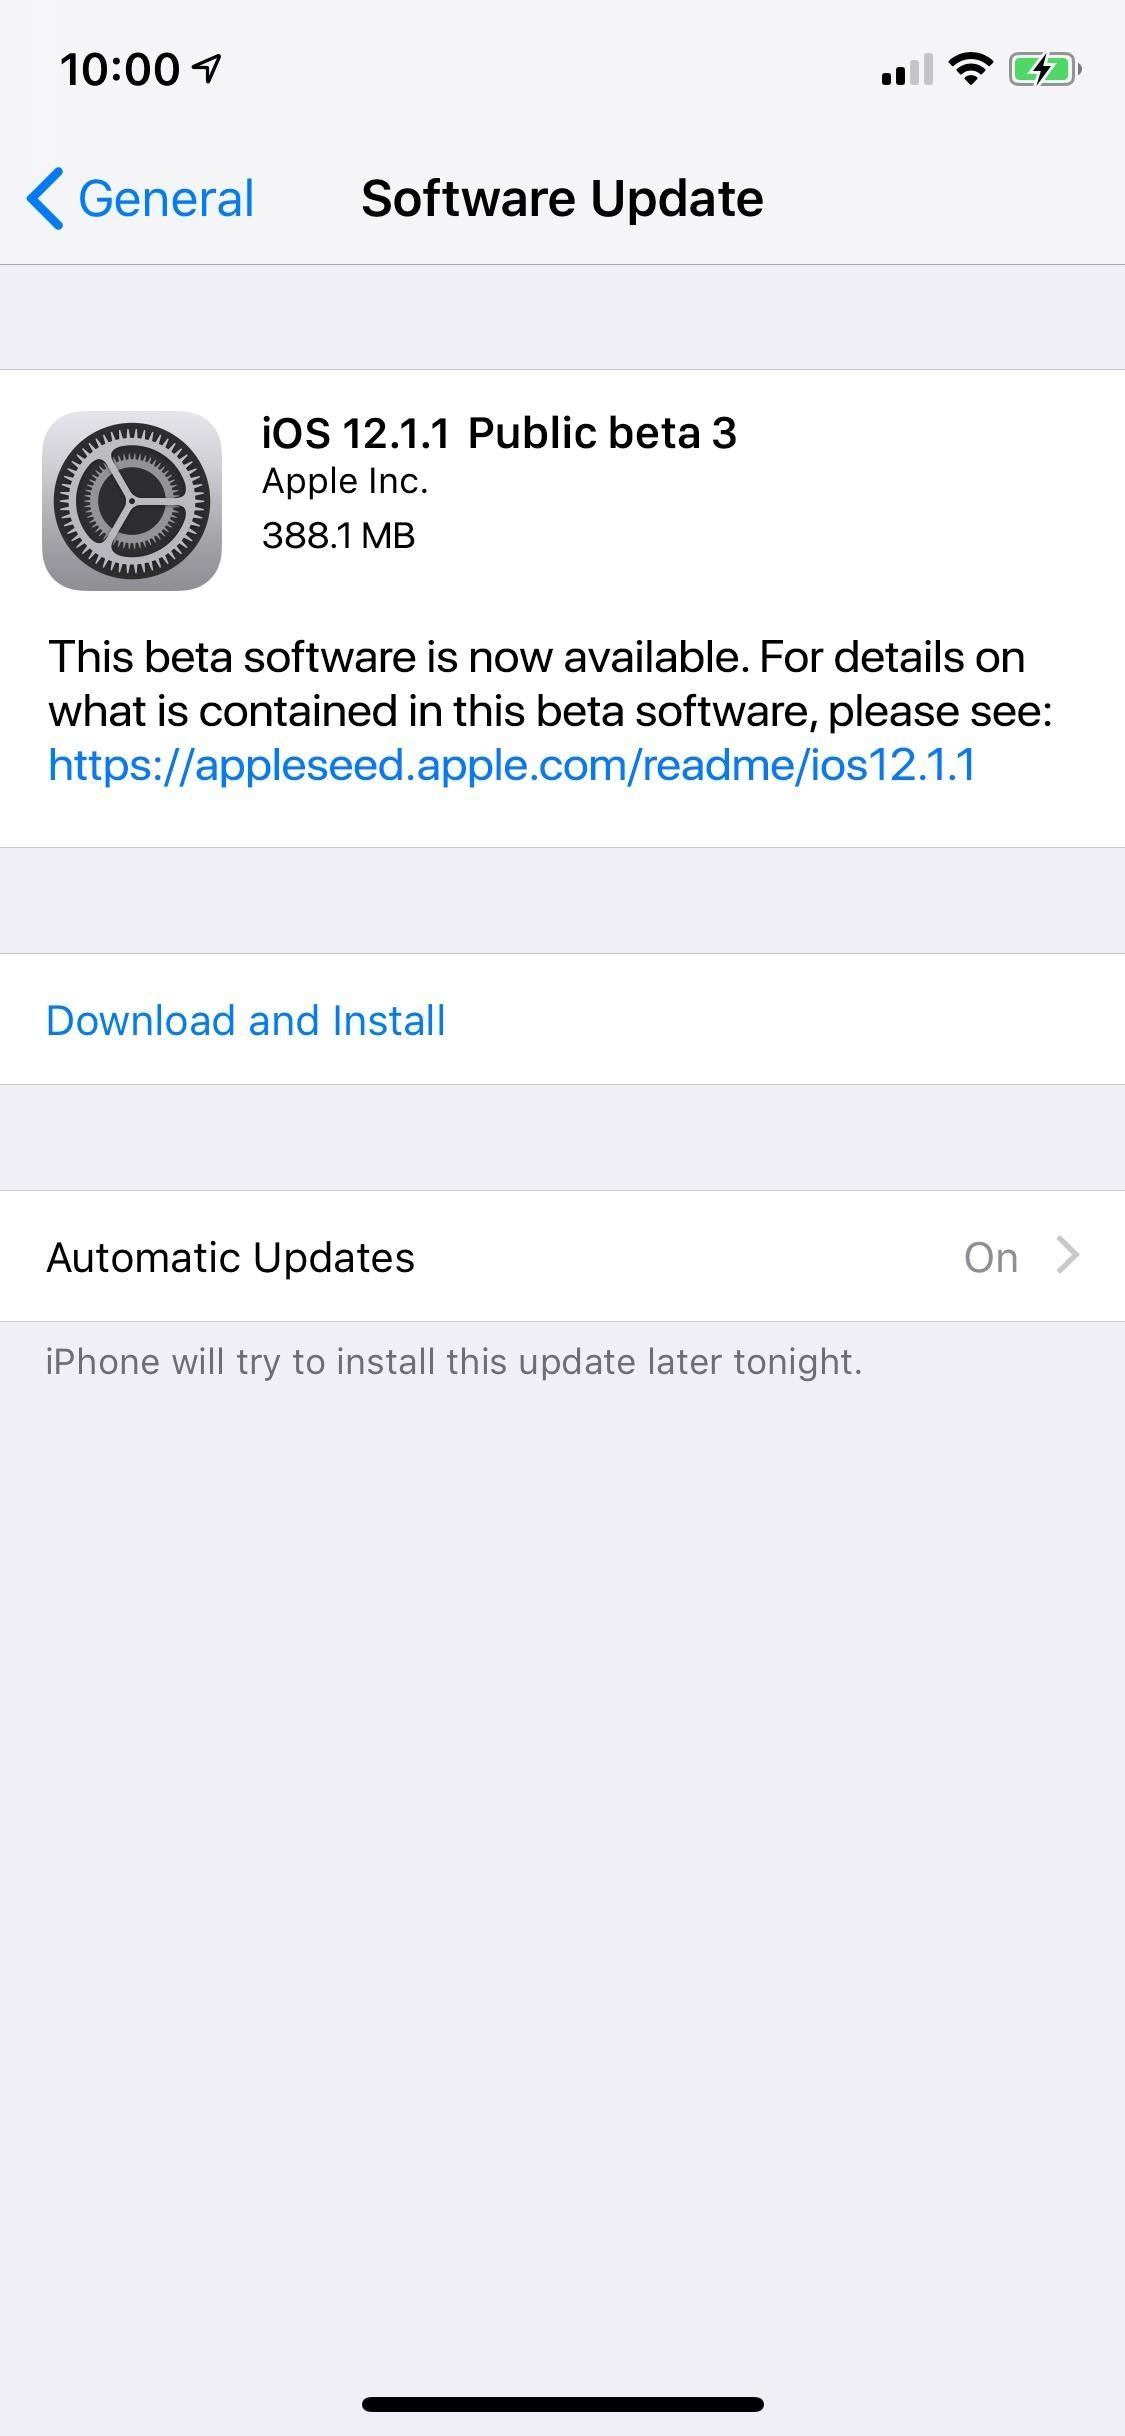 iOS 12.1.1 Public Beta 3 now available for software testers